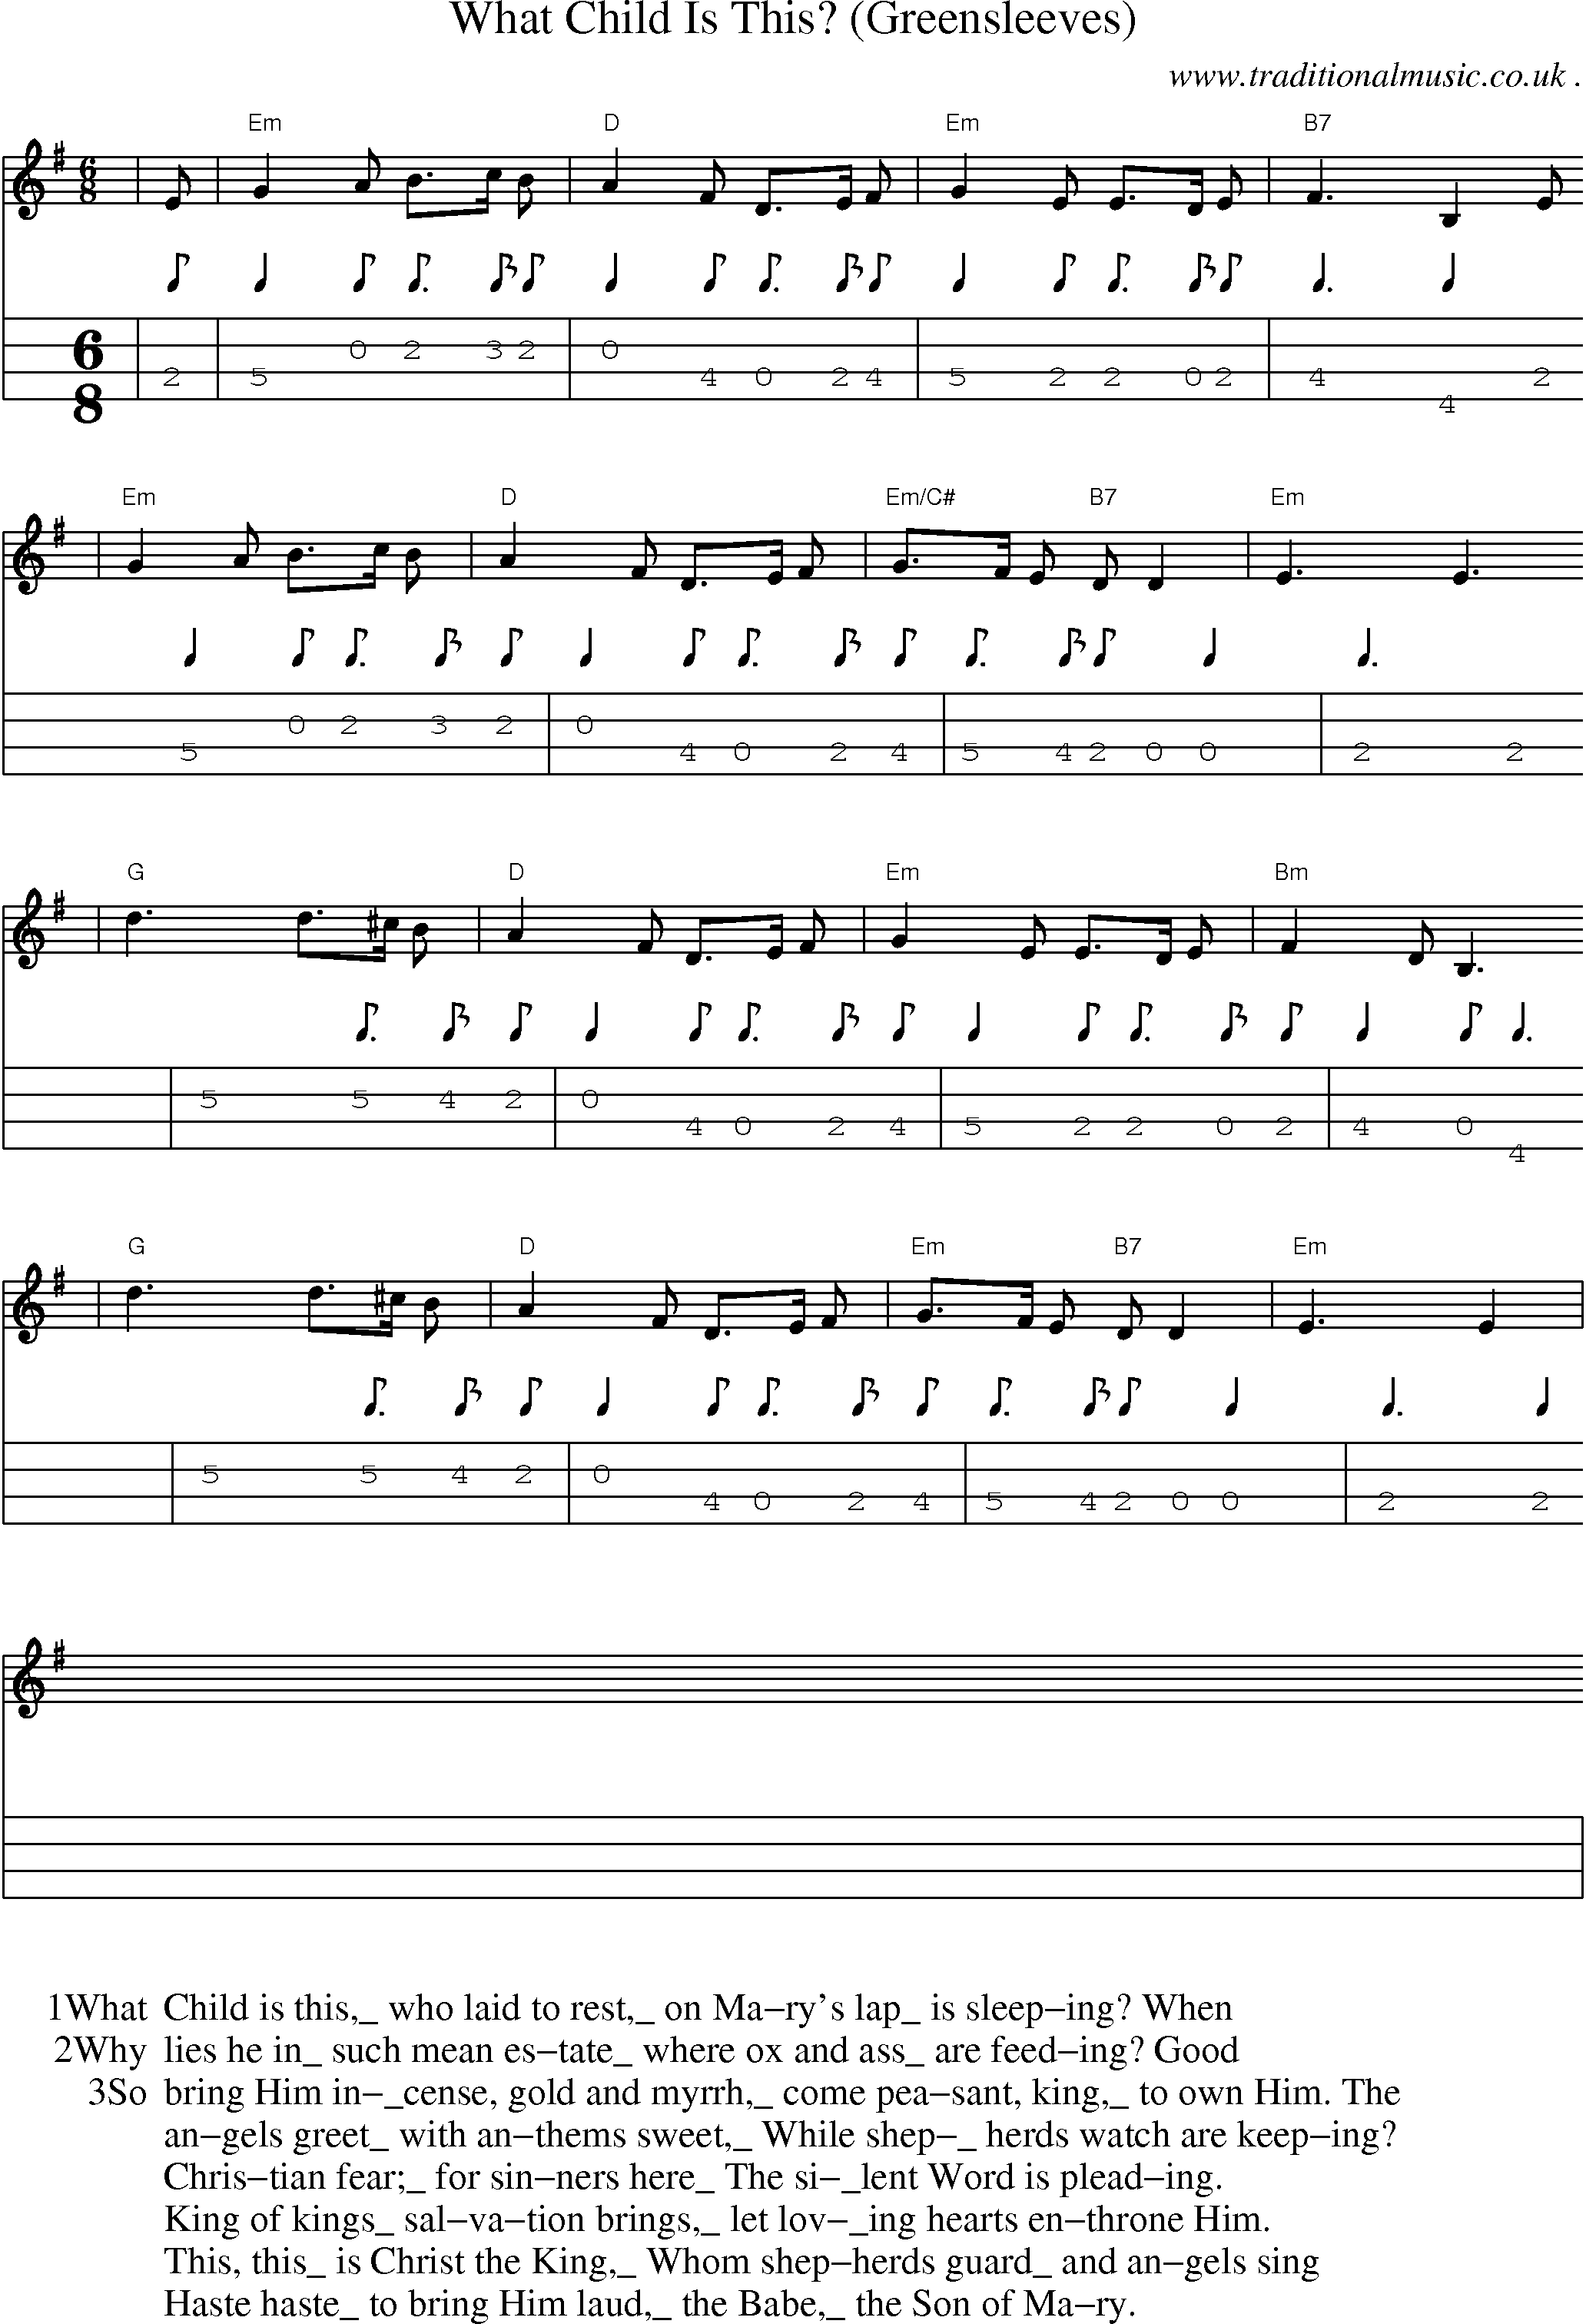 American Old-time music, Scores and Tabs for Mandolin - What Child Is This (greensleeves)